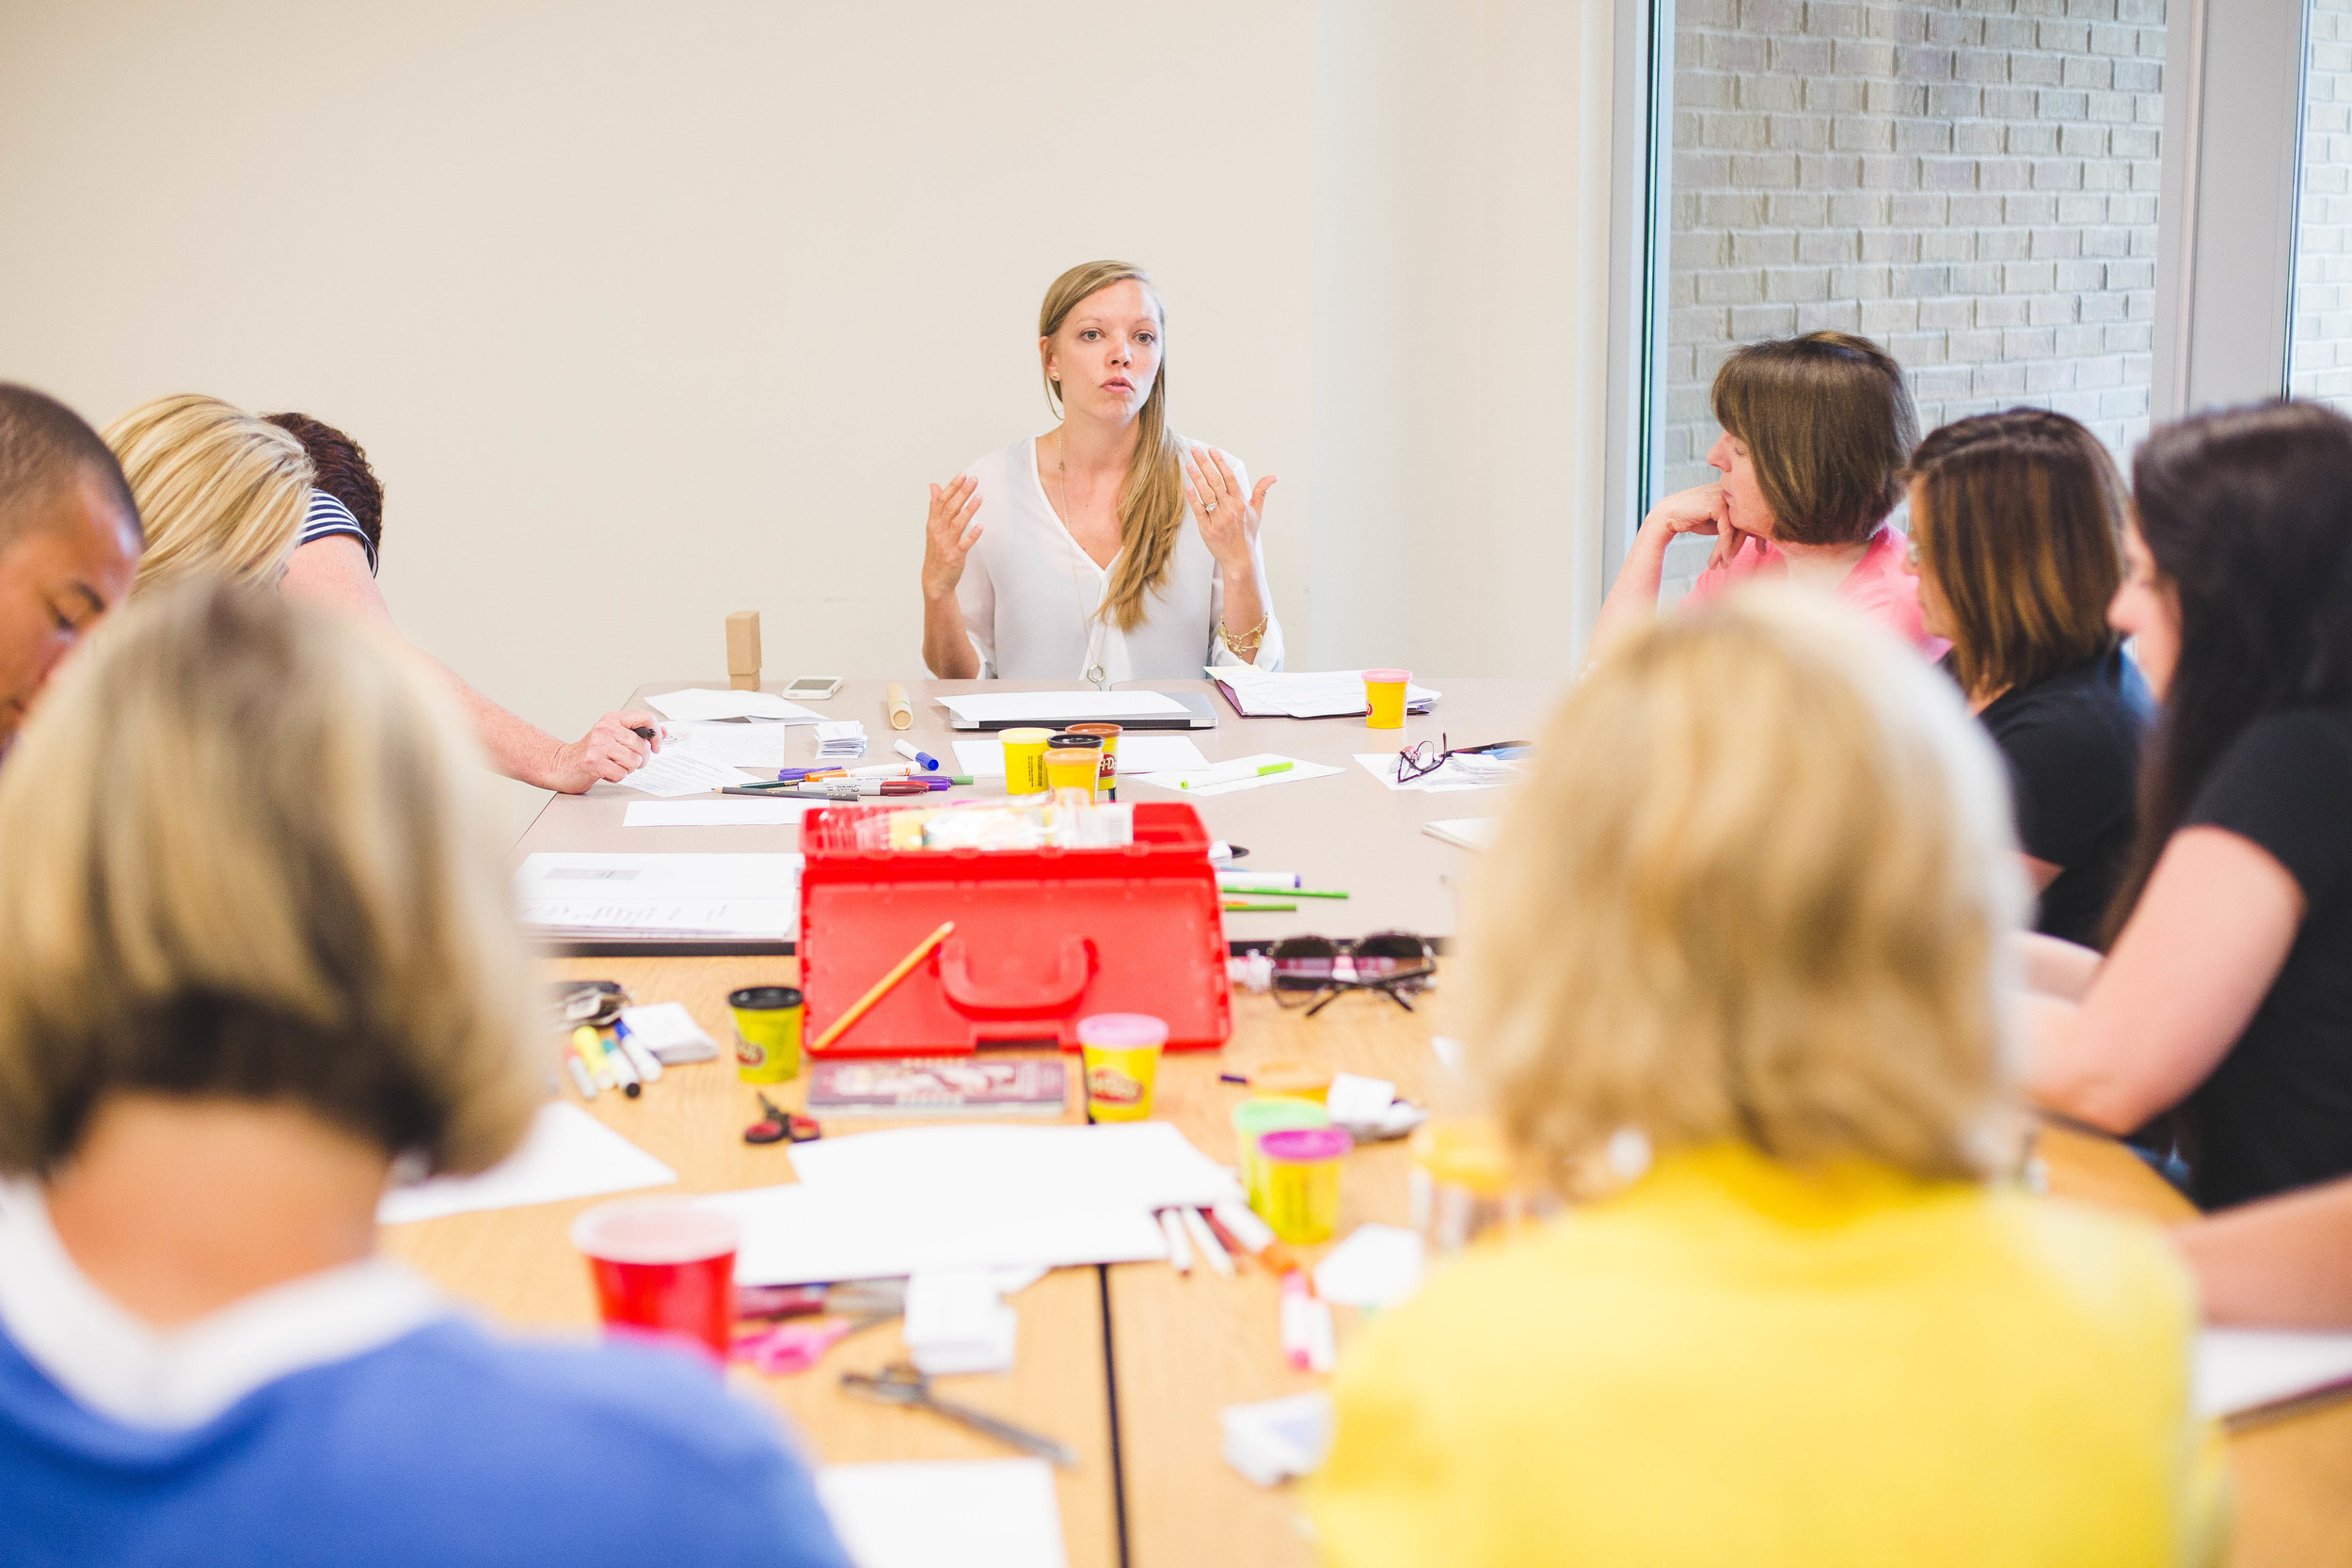 Three workshop series - Meet the needs of your employees and leaders. Each workshop can stand alone, or be combined with others in its series for a half or full day of professional development.